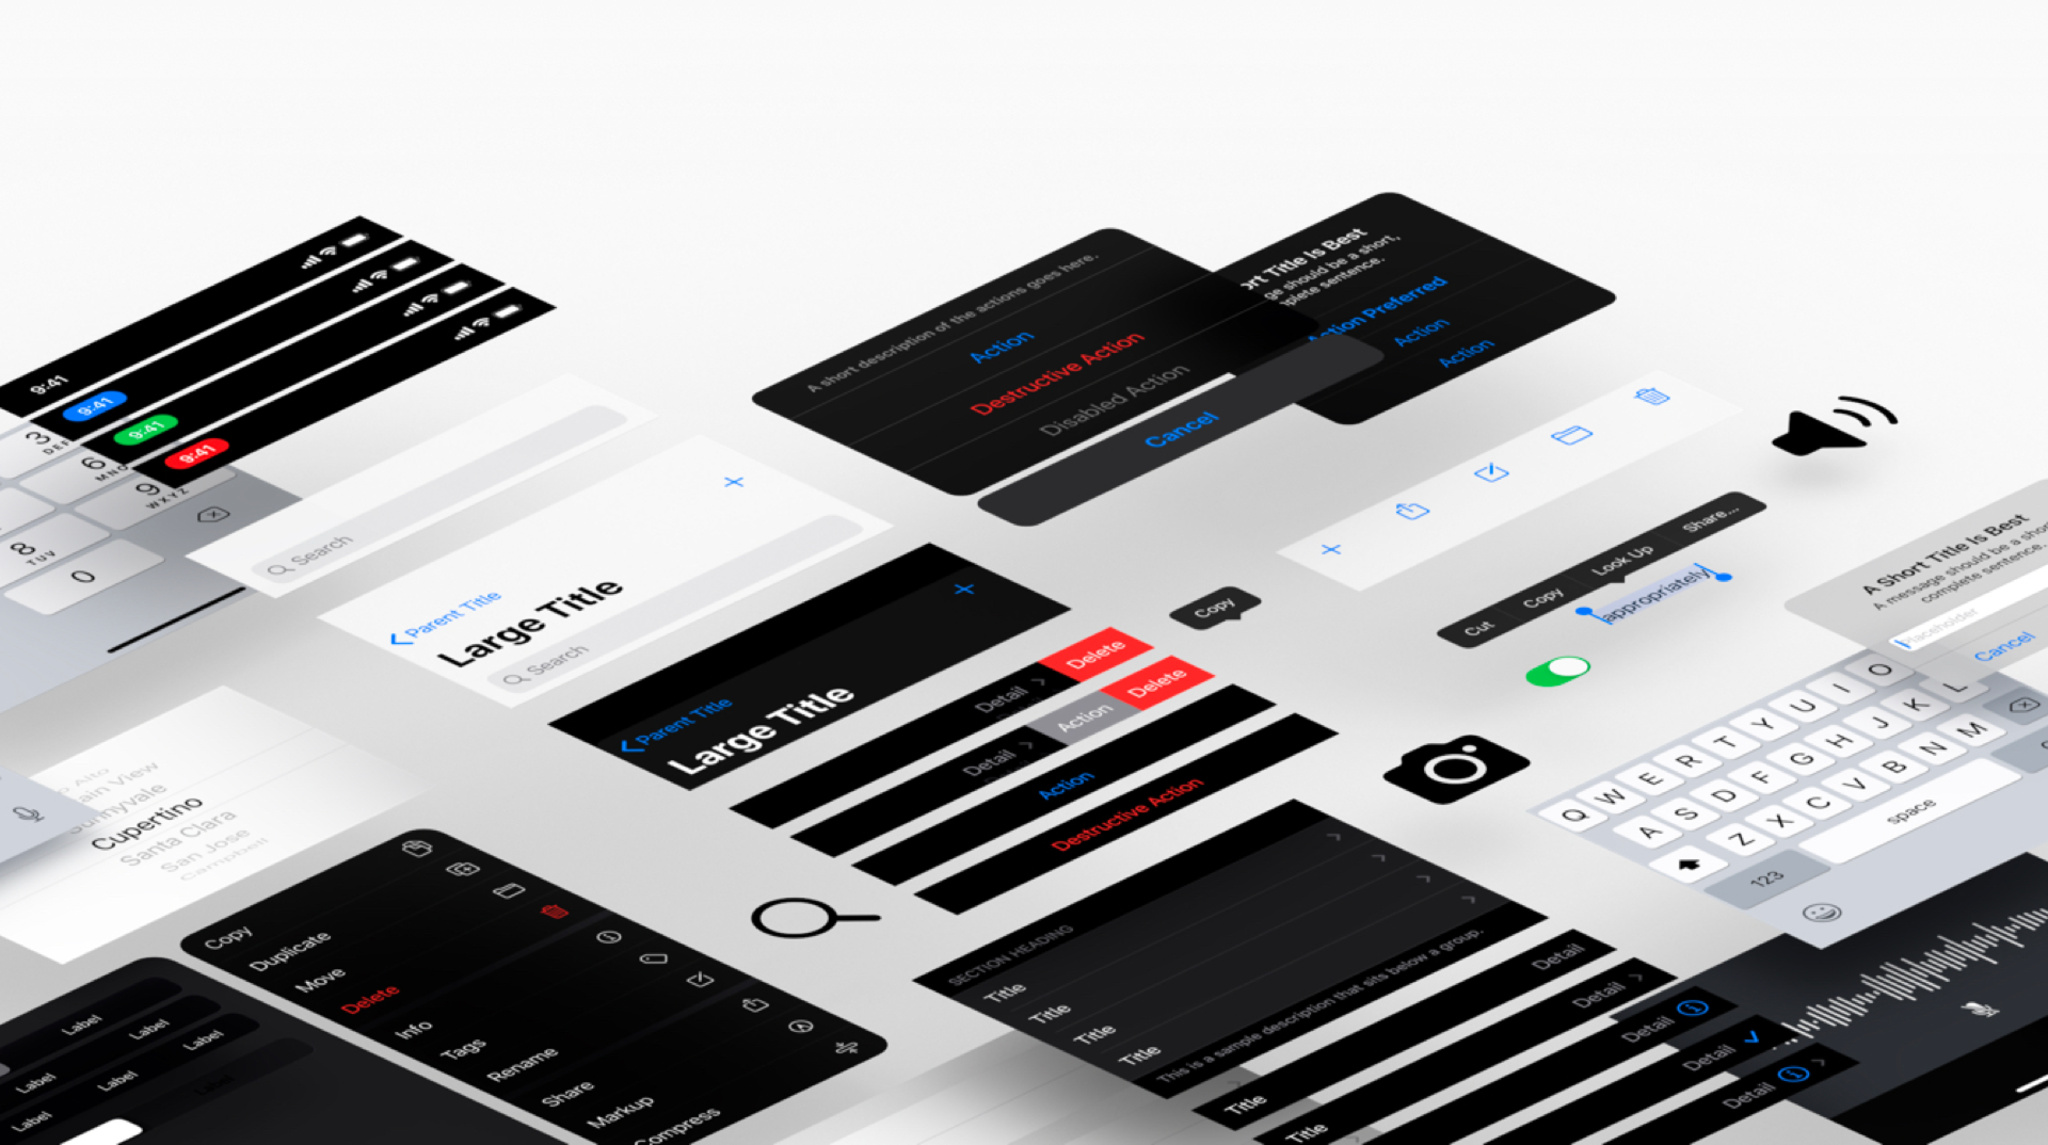 The Apple Design Resources contain templates and libraries that are filled with ready-to-use iOS elements including toolbars, tab bars, buttons, and more.